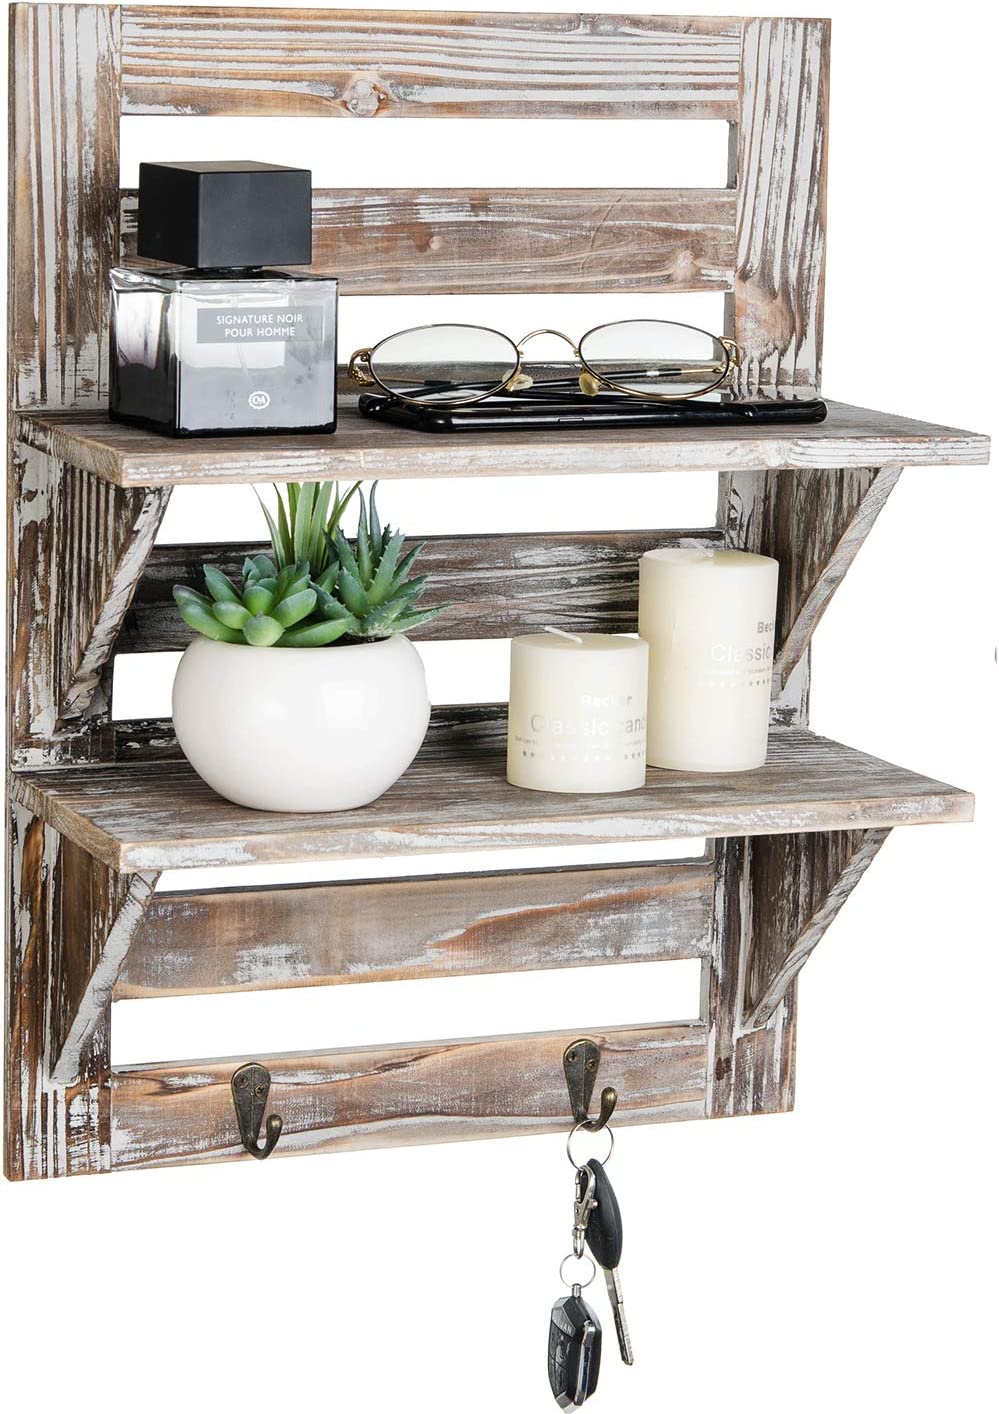 Liry Products Rustic Wooden Wall Mounted Shelves Iron Hooks Two-Tier Storage Rack Brown Torched Distressed Wood Display Shelf Organizer Farmhouse Decorative Holder Home Office Kitchen Living Room